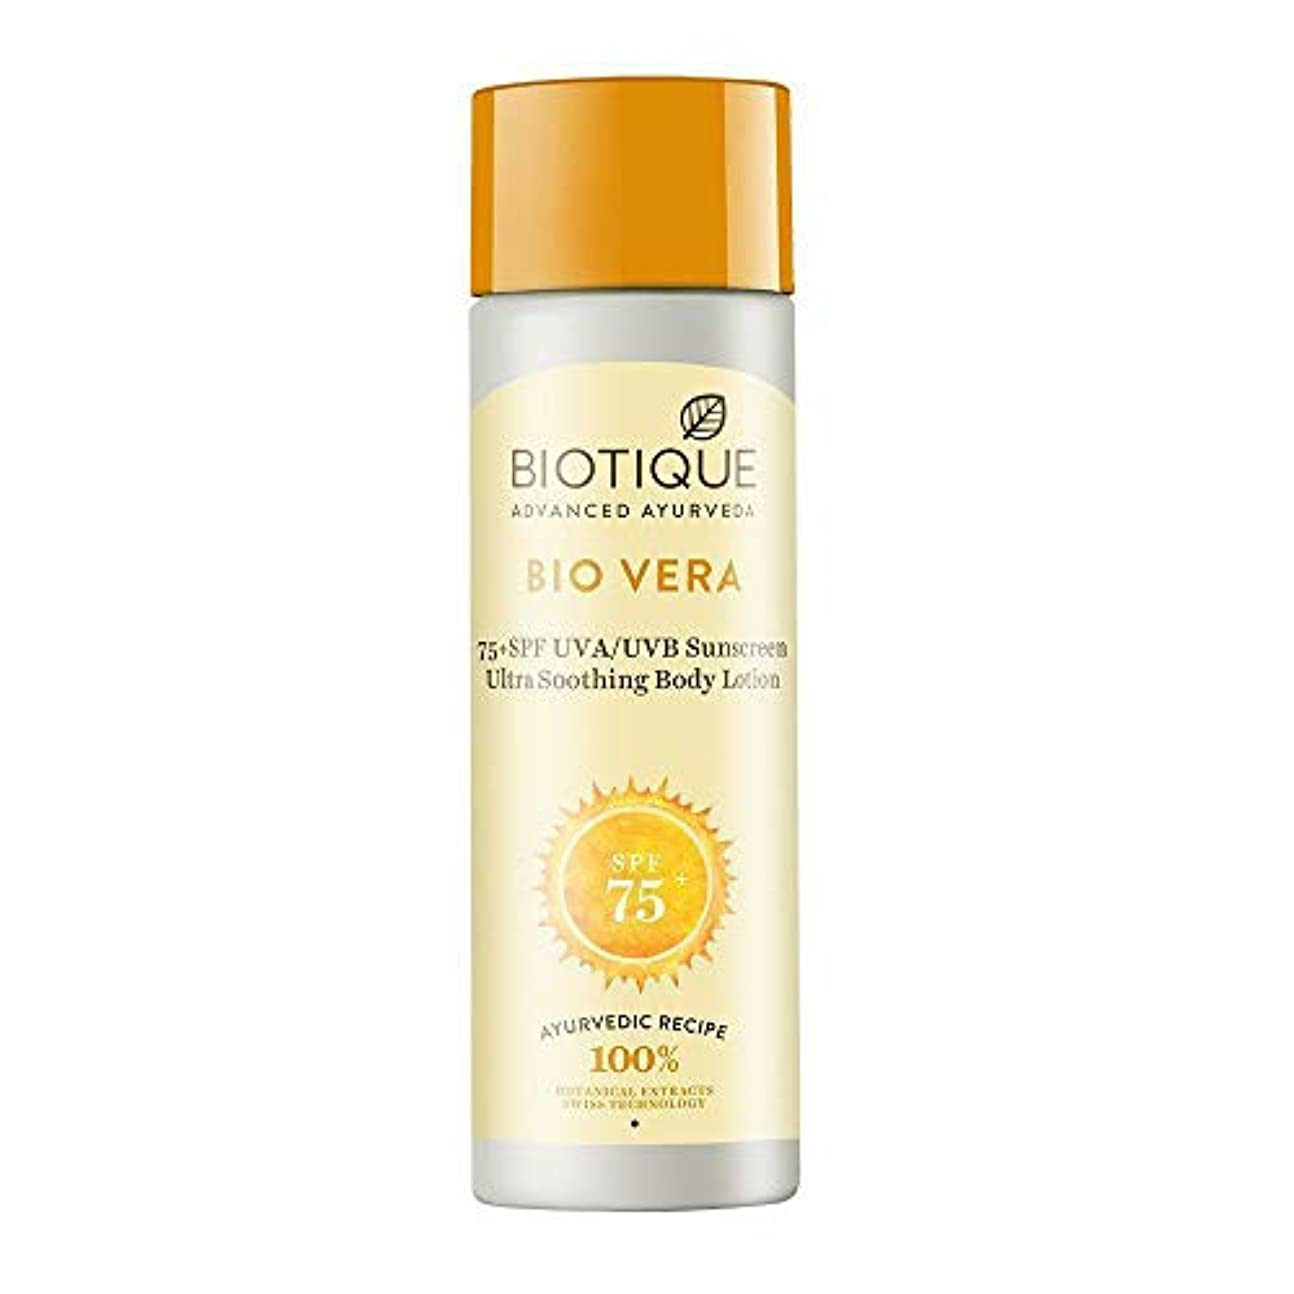 付録修理可能偶然のBIOTIQUE BIO VERA SPF 75+ UVA/UVB SUNSCREEN ULTRA SOOTHING LOTION - 190ml BIOTIQUE BIO VERA SPF 75+ UVA/UVBサンスクリーンウルトラソーティングローション